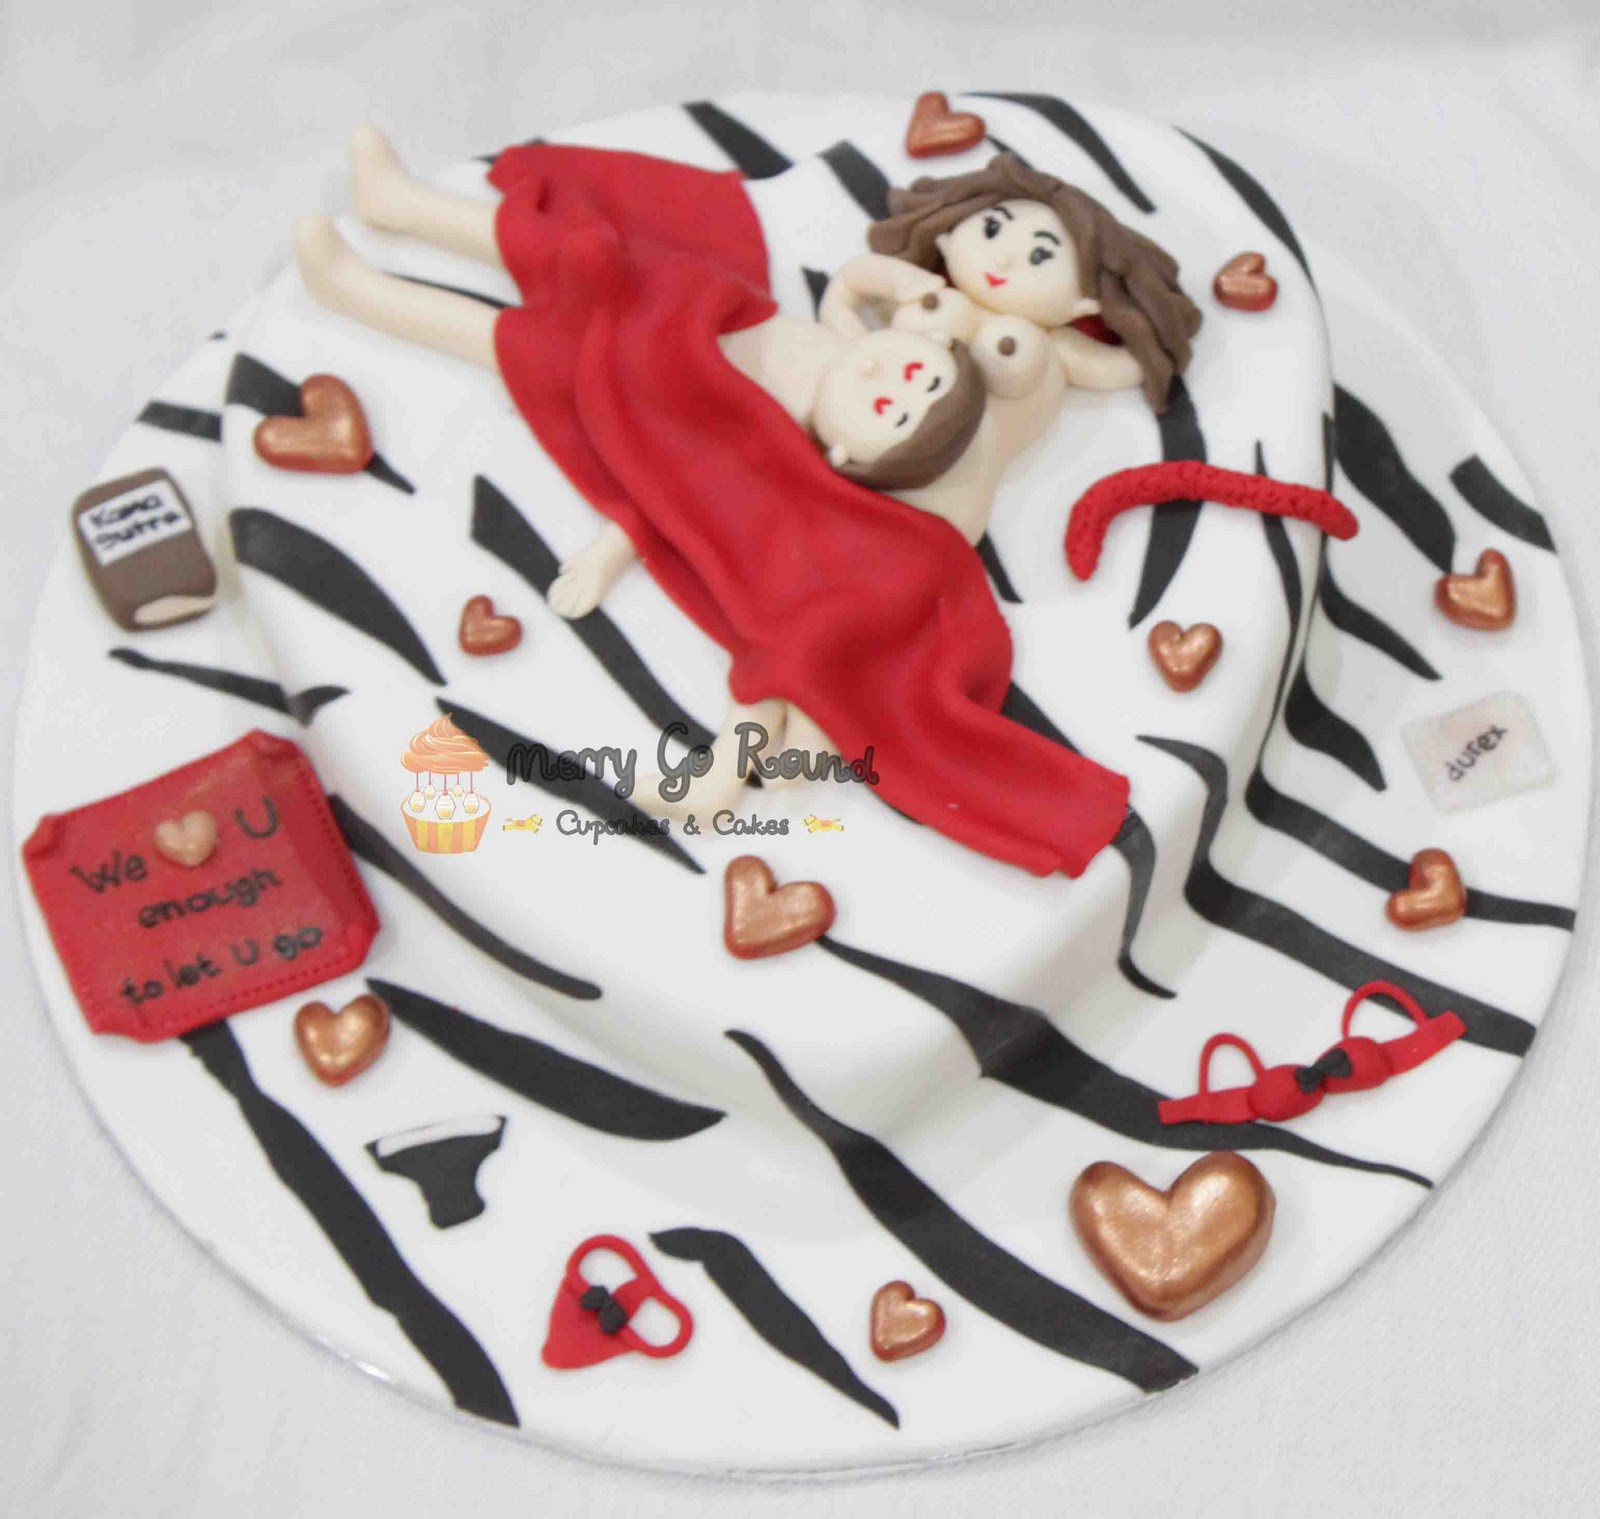 Merry Go Round Cupcakes Cakes Naughty Bed Cake For Bachelorette